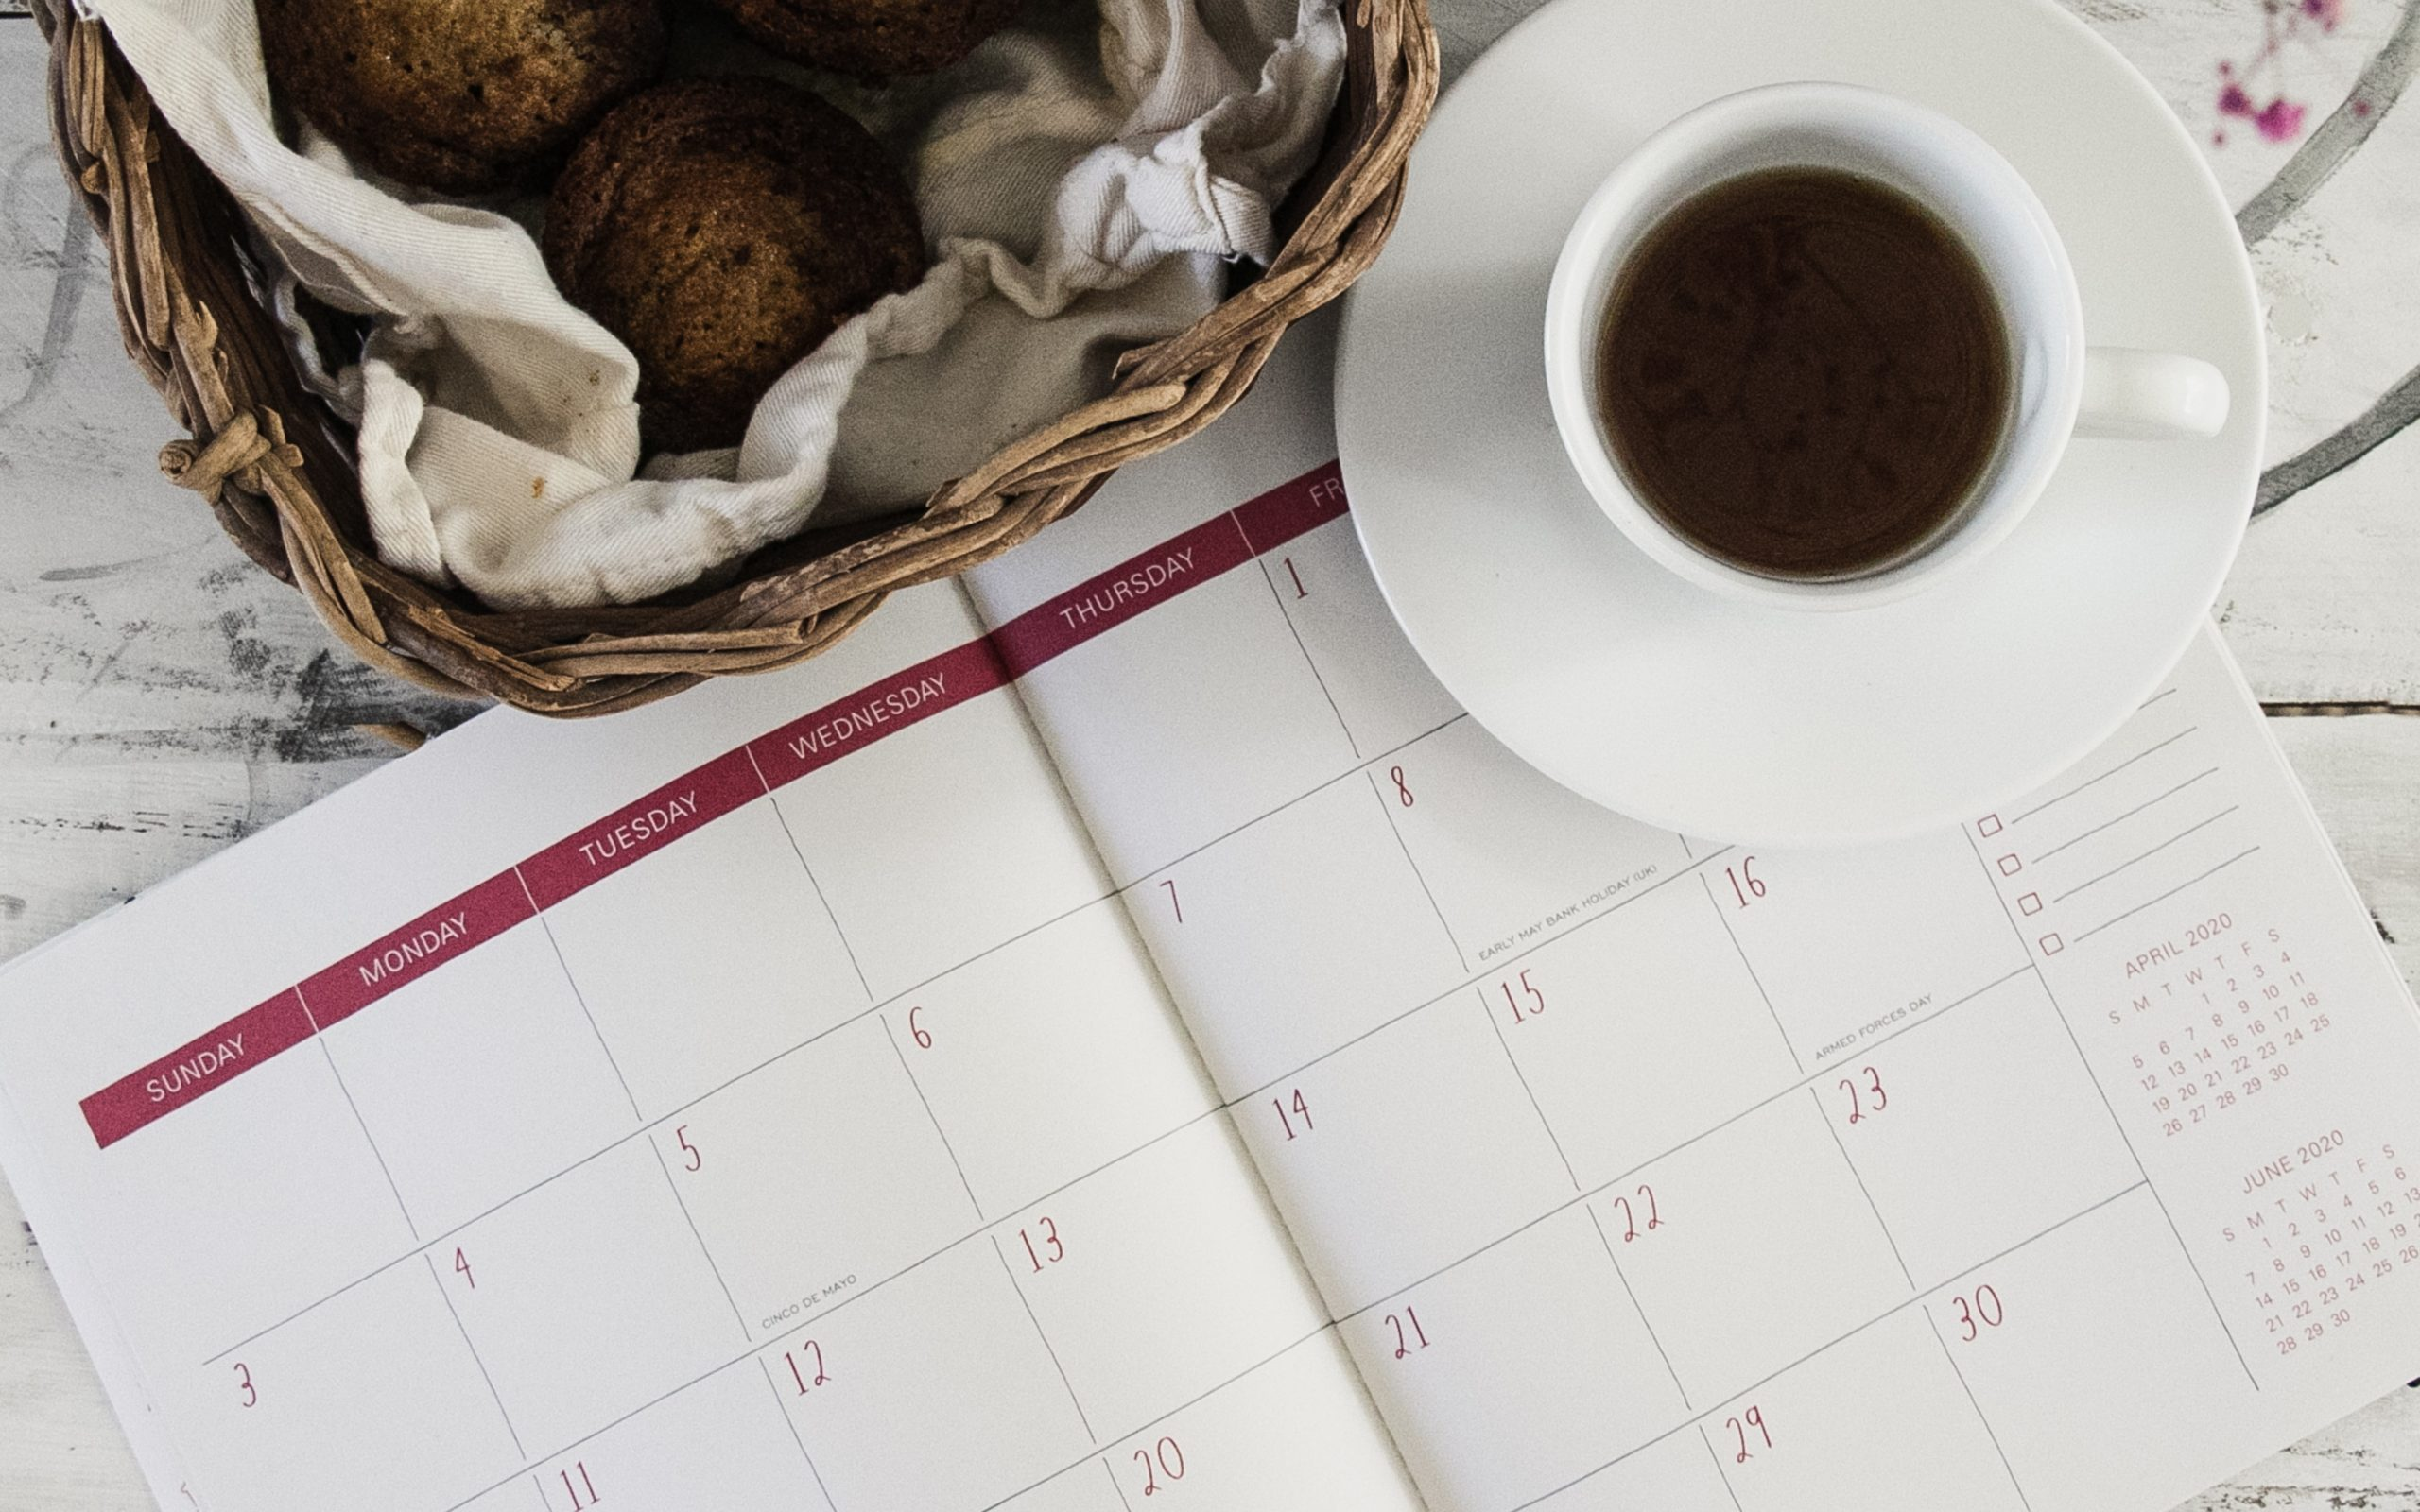 a cup of black coffee placed atop a calendar